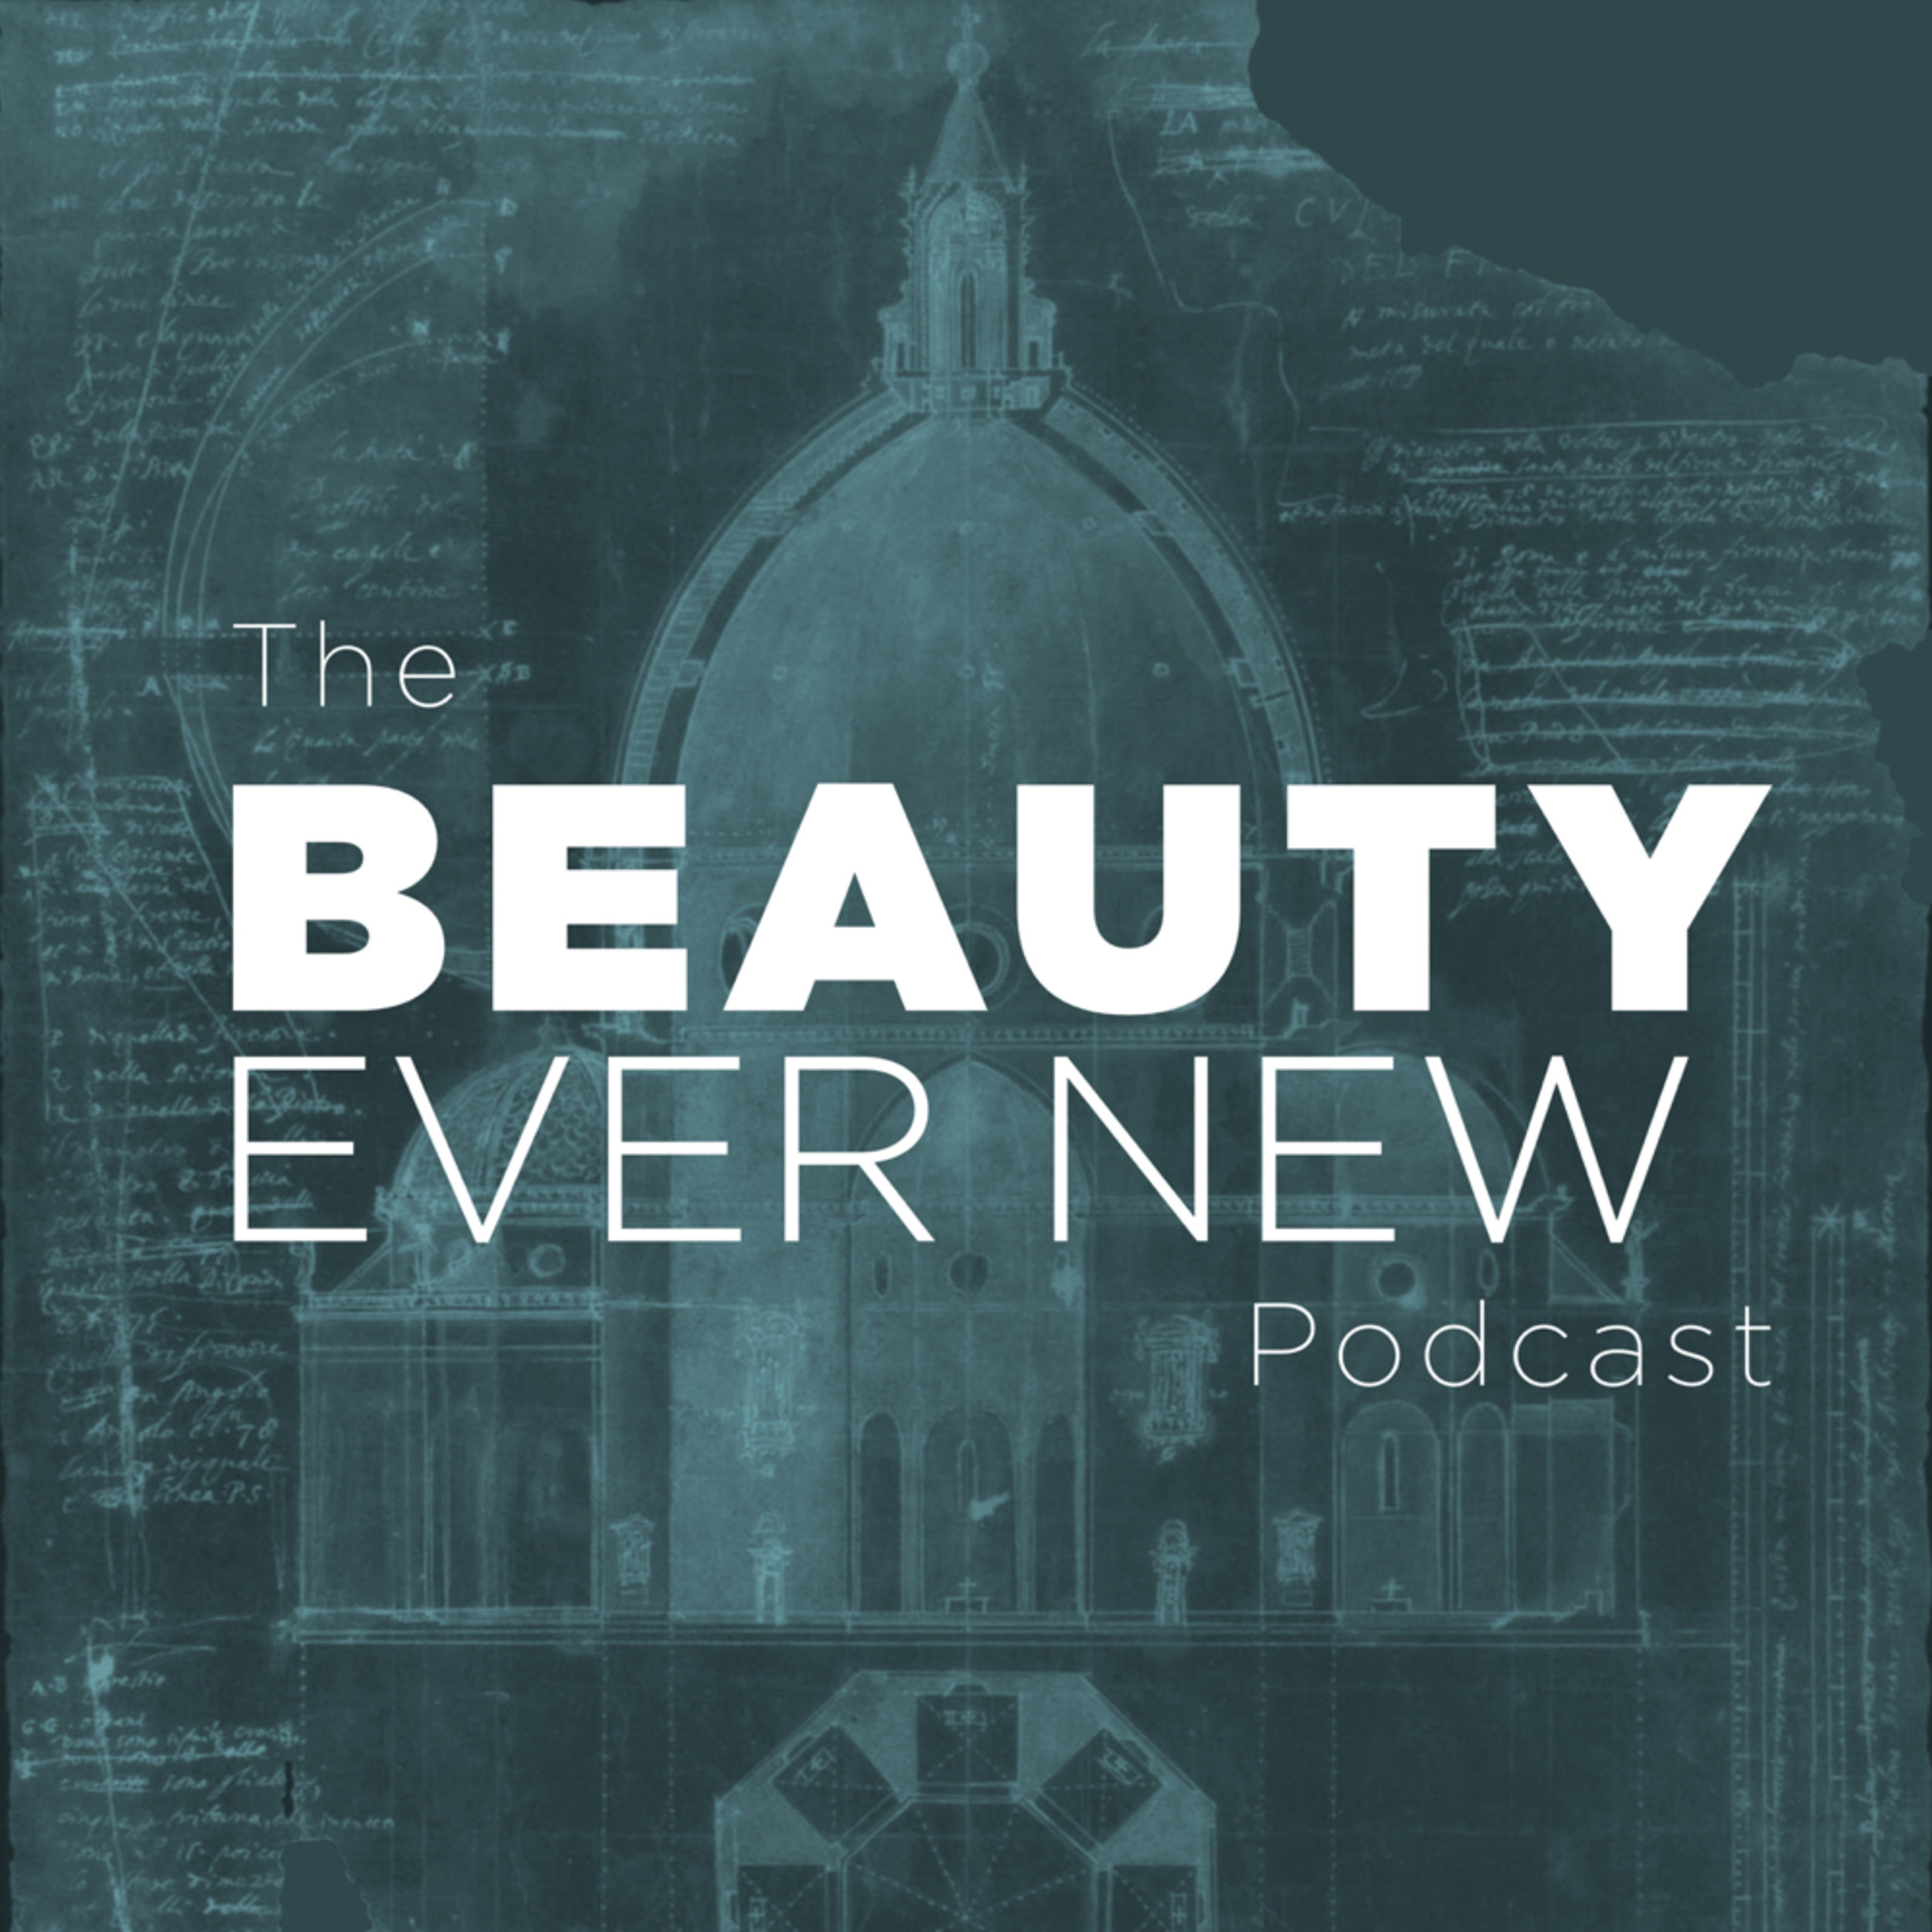 Beauty Ever New Podcast Interview, Episode 9: 'Restoring the Sacred' –  4/26/19